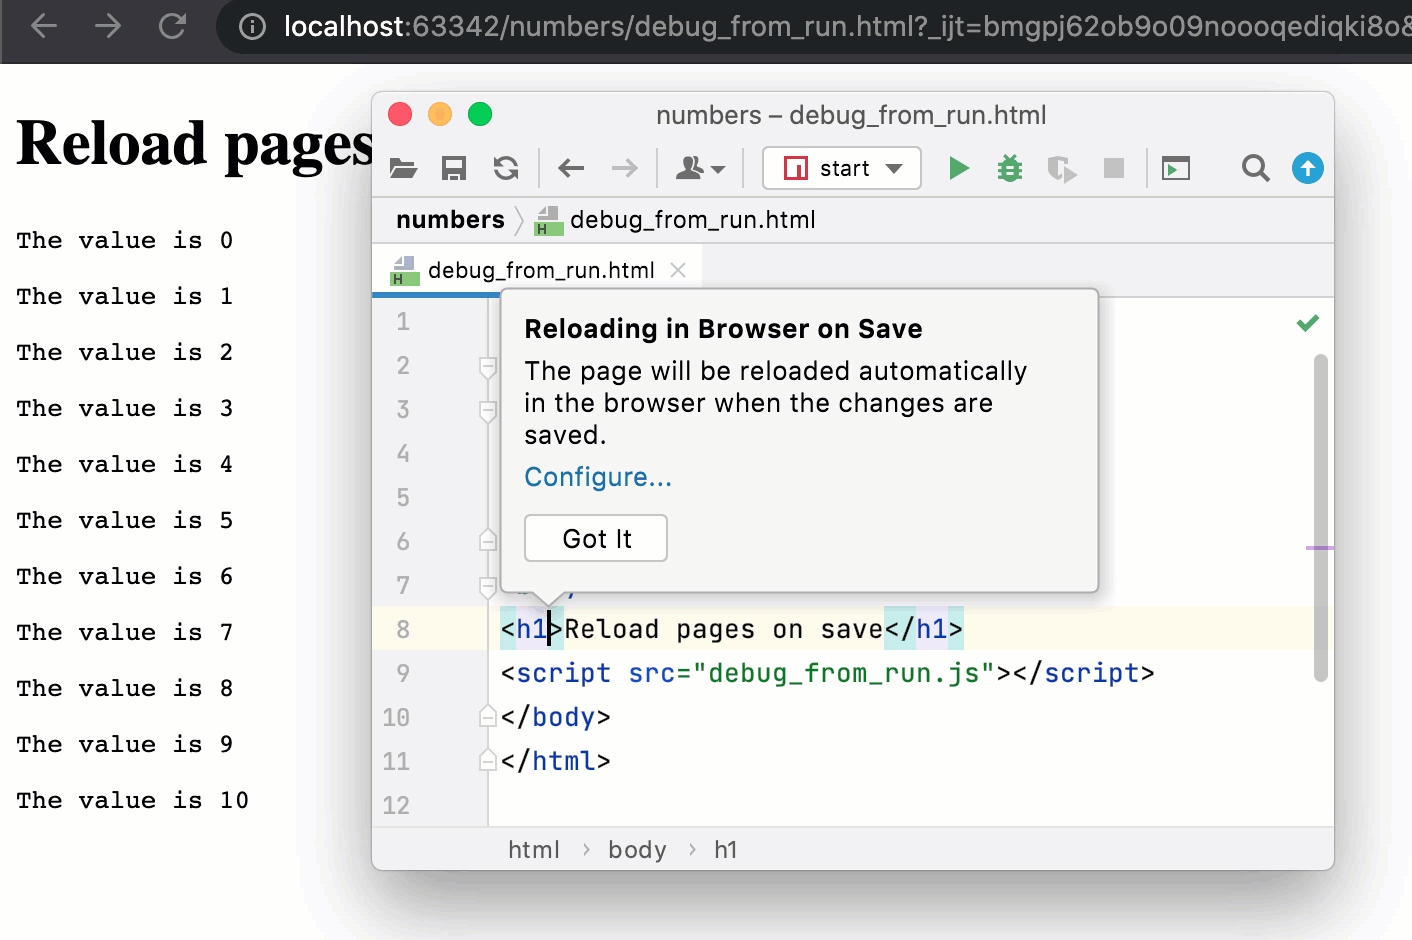 Reloading a HTML page on save